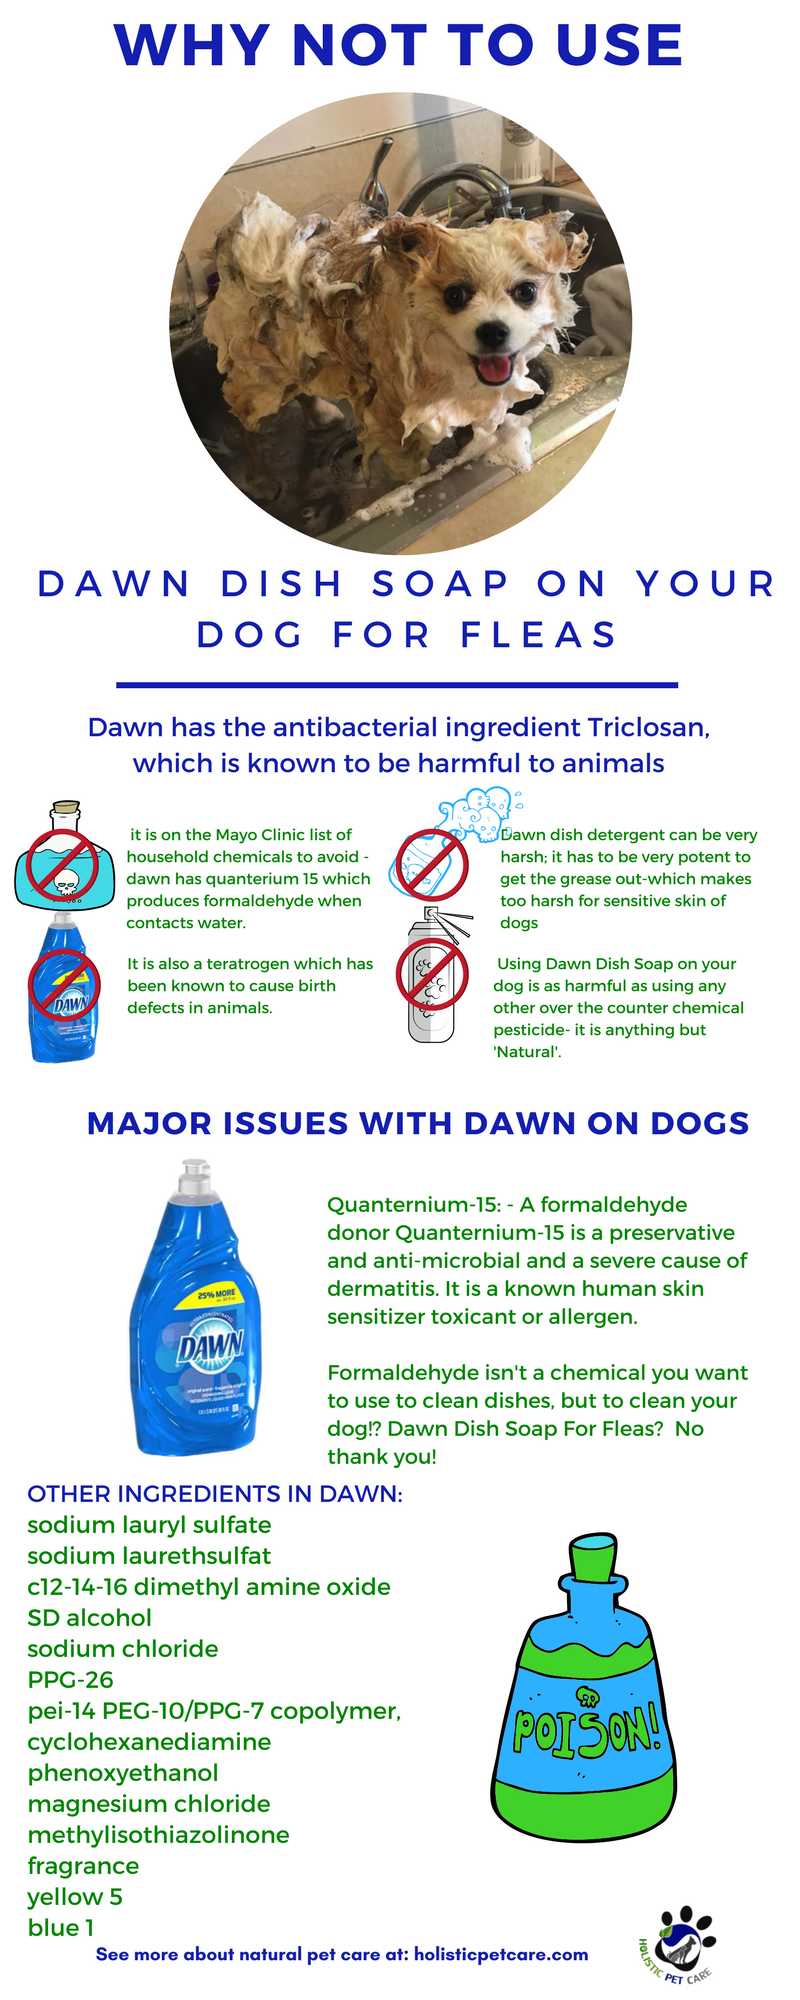 Dawn dish soap for dogs with fleas